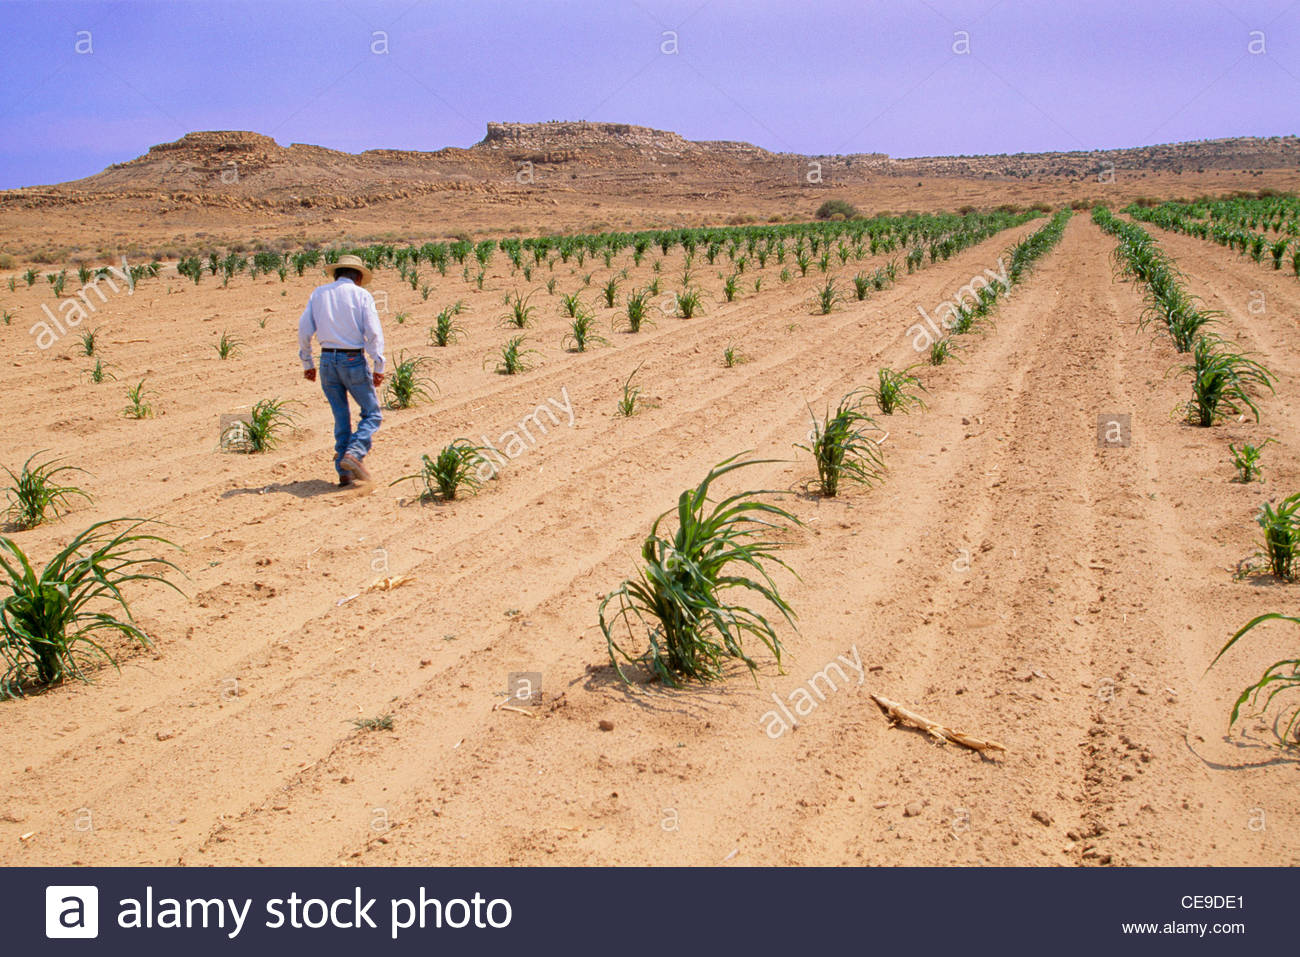 Hopi Indian farmer, dry farming in his cornfield during ...1300 x 957 jpeg 256 КБ